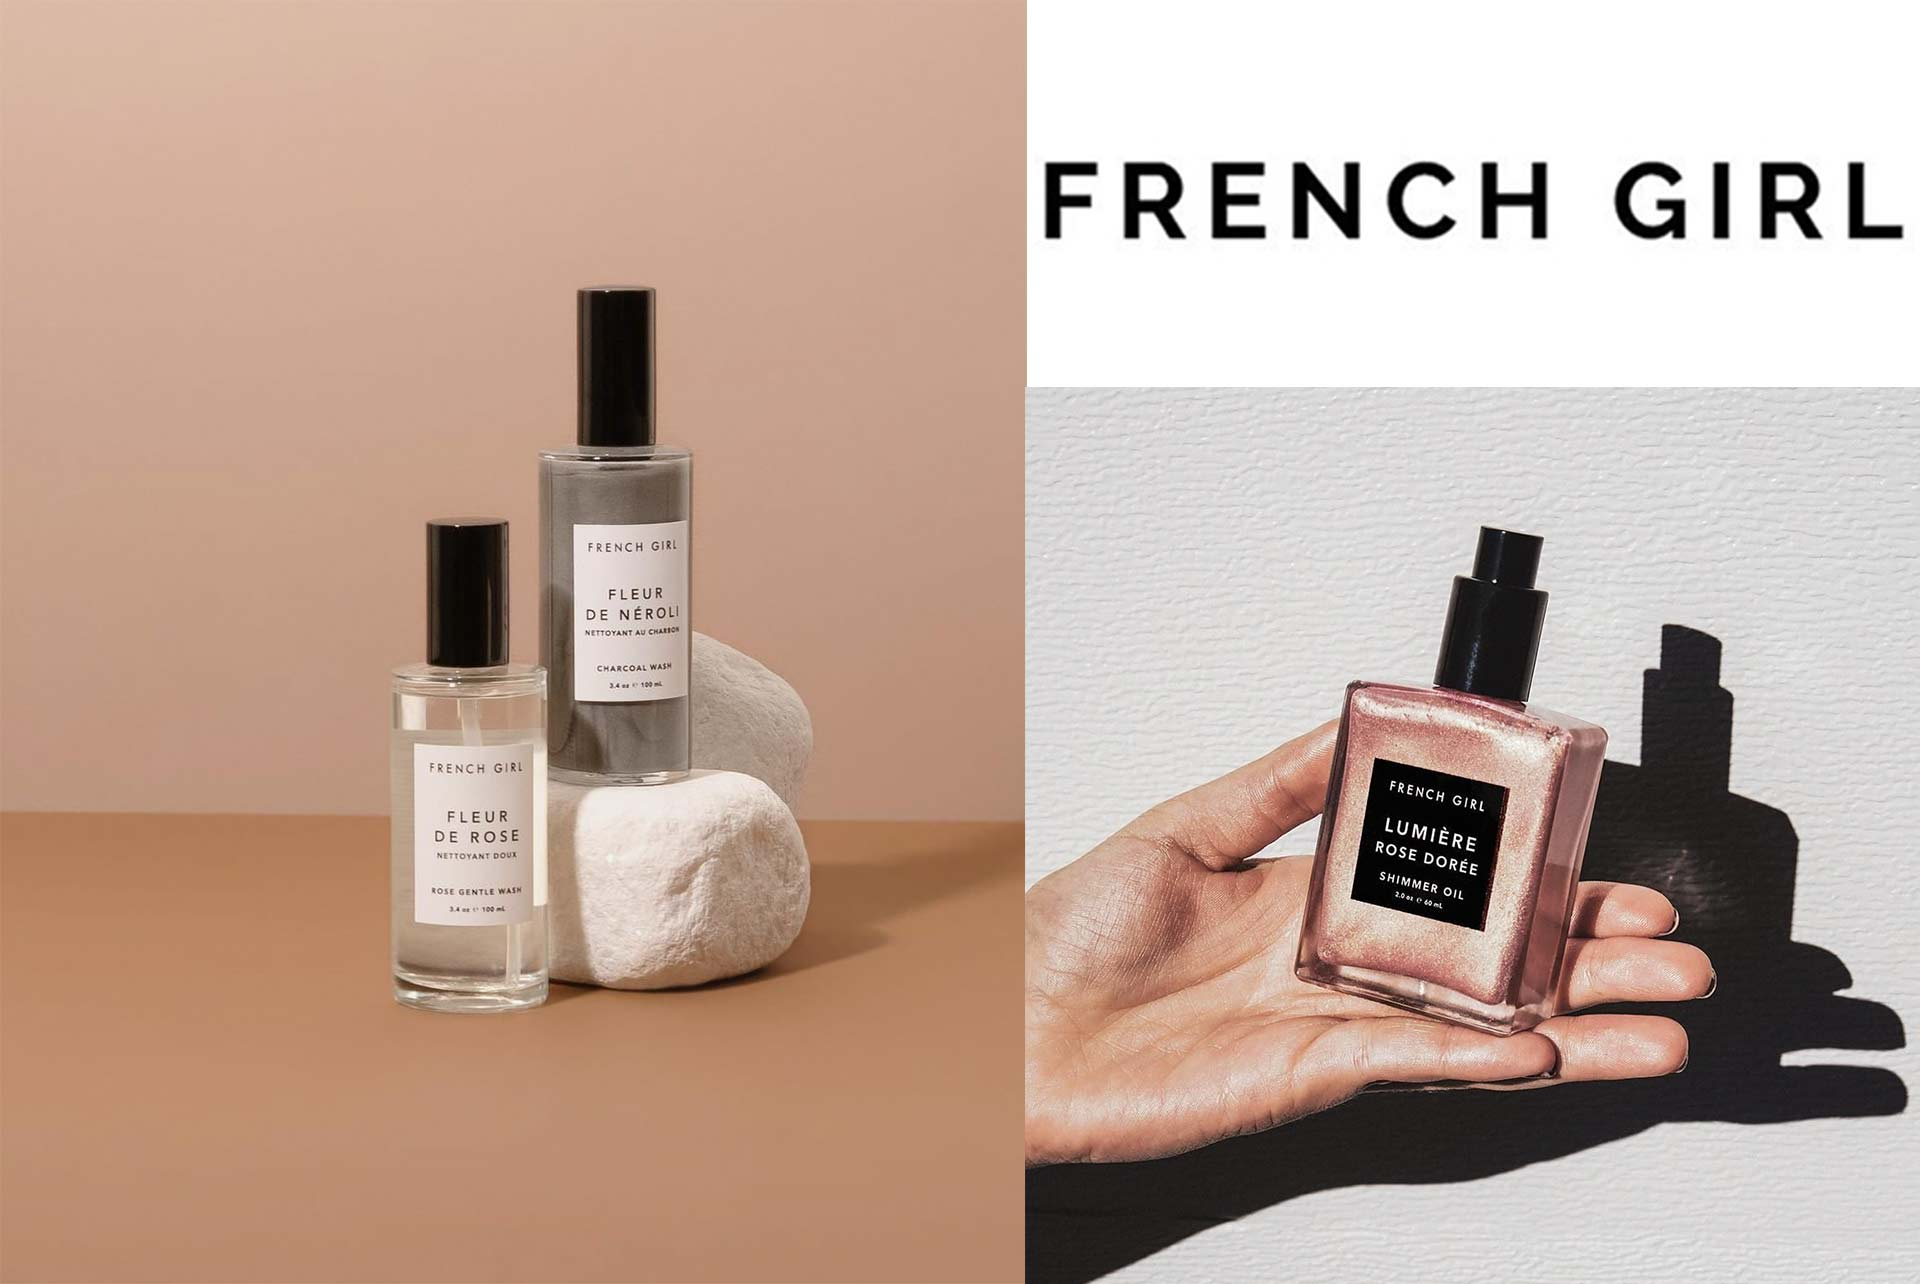 Is French Girl Cruelty-Free & Vegan?